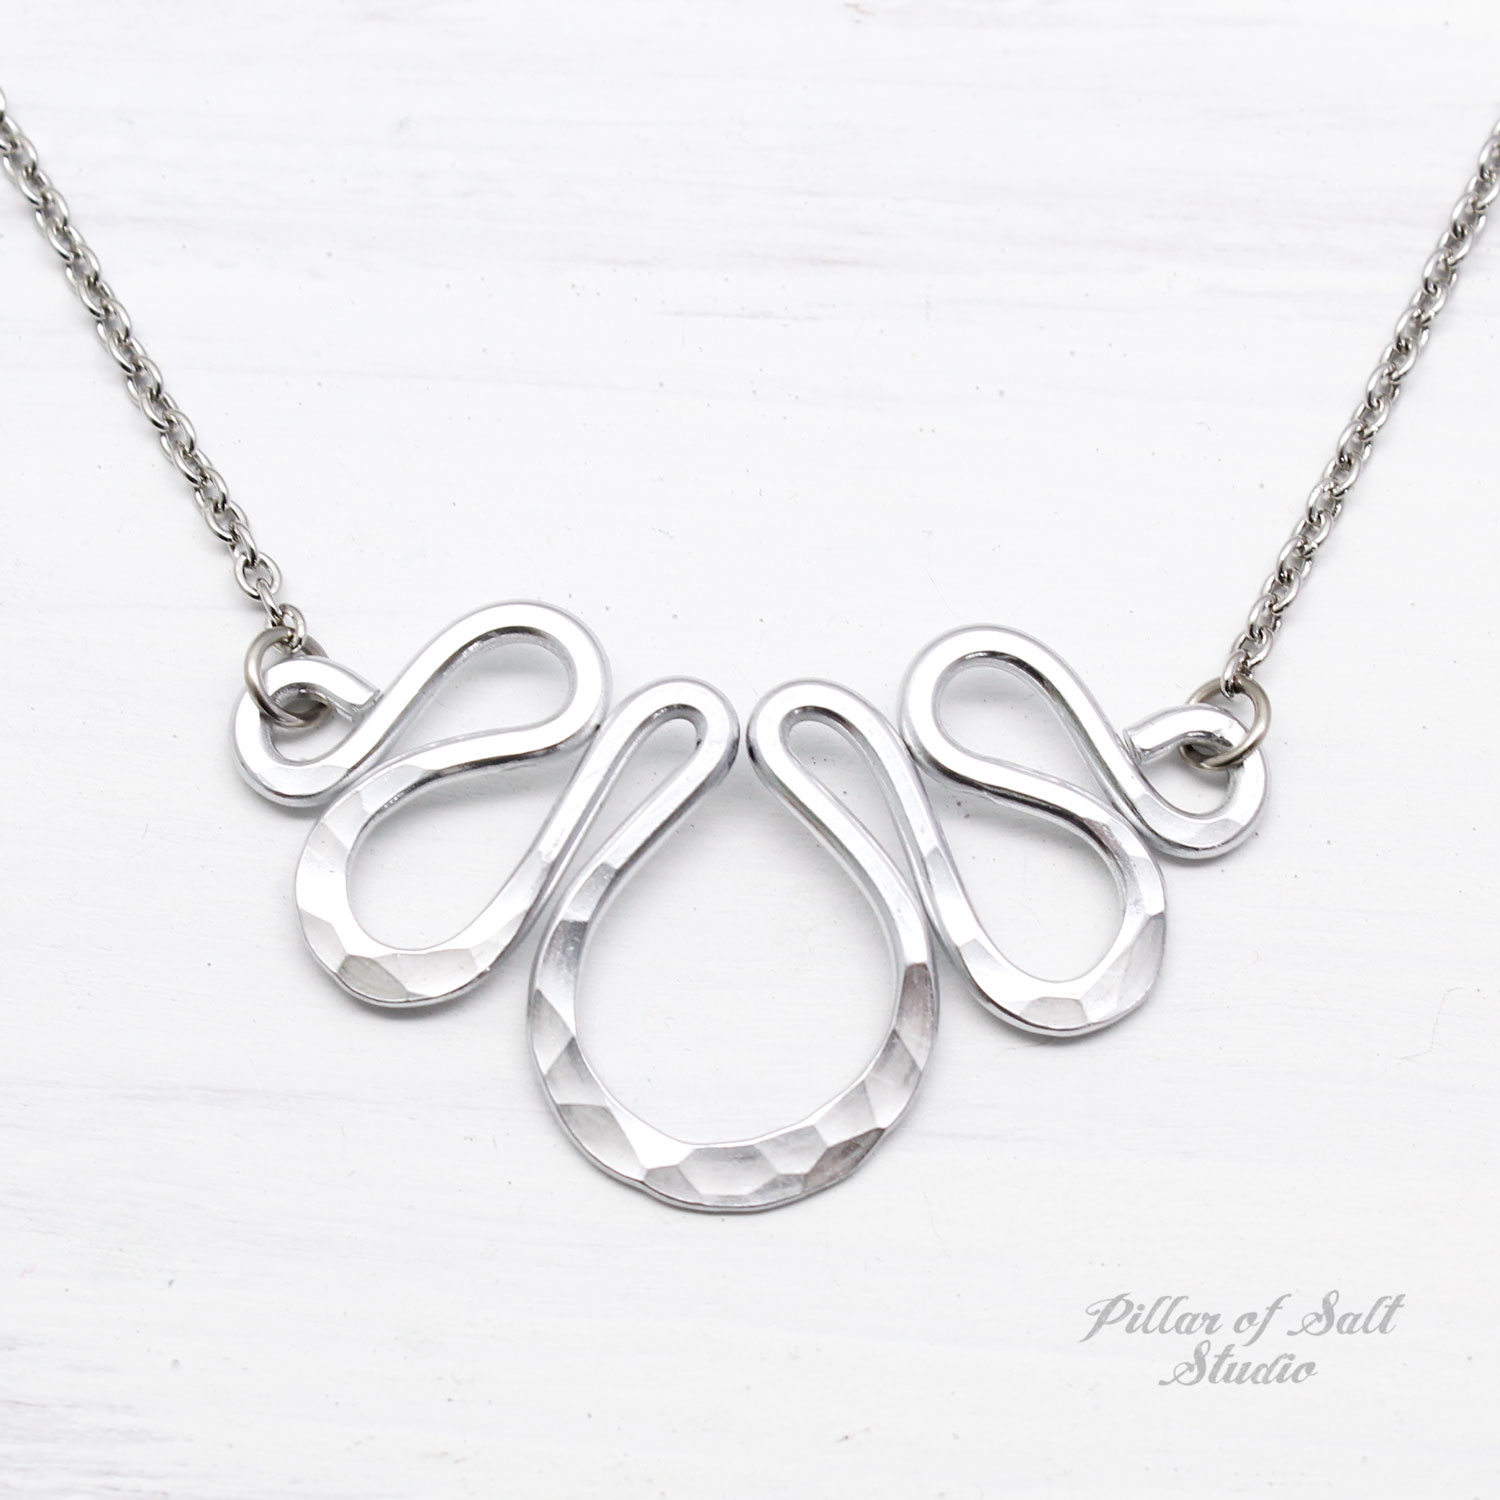 Aluminum necklace with stainless steel chain--a great 10th anniversary gift idea.